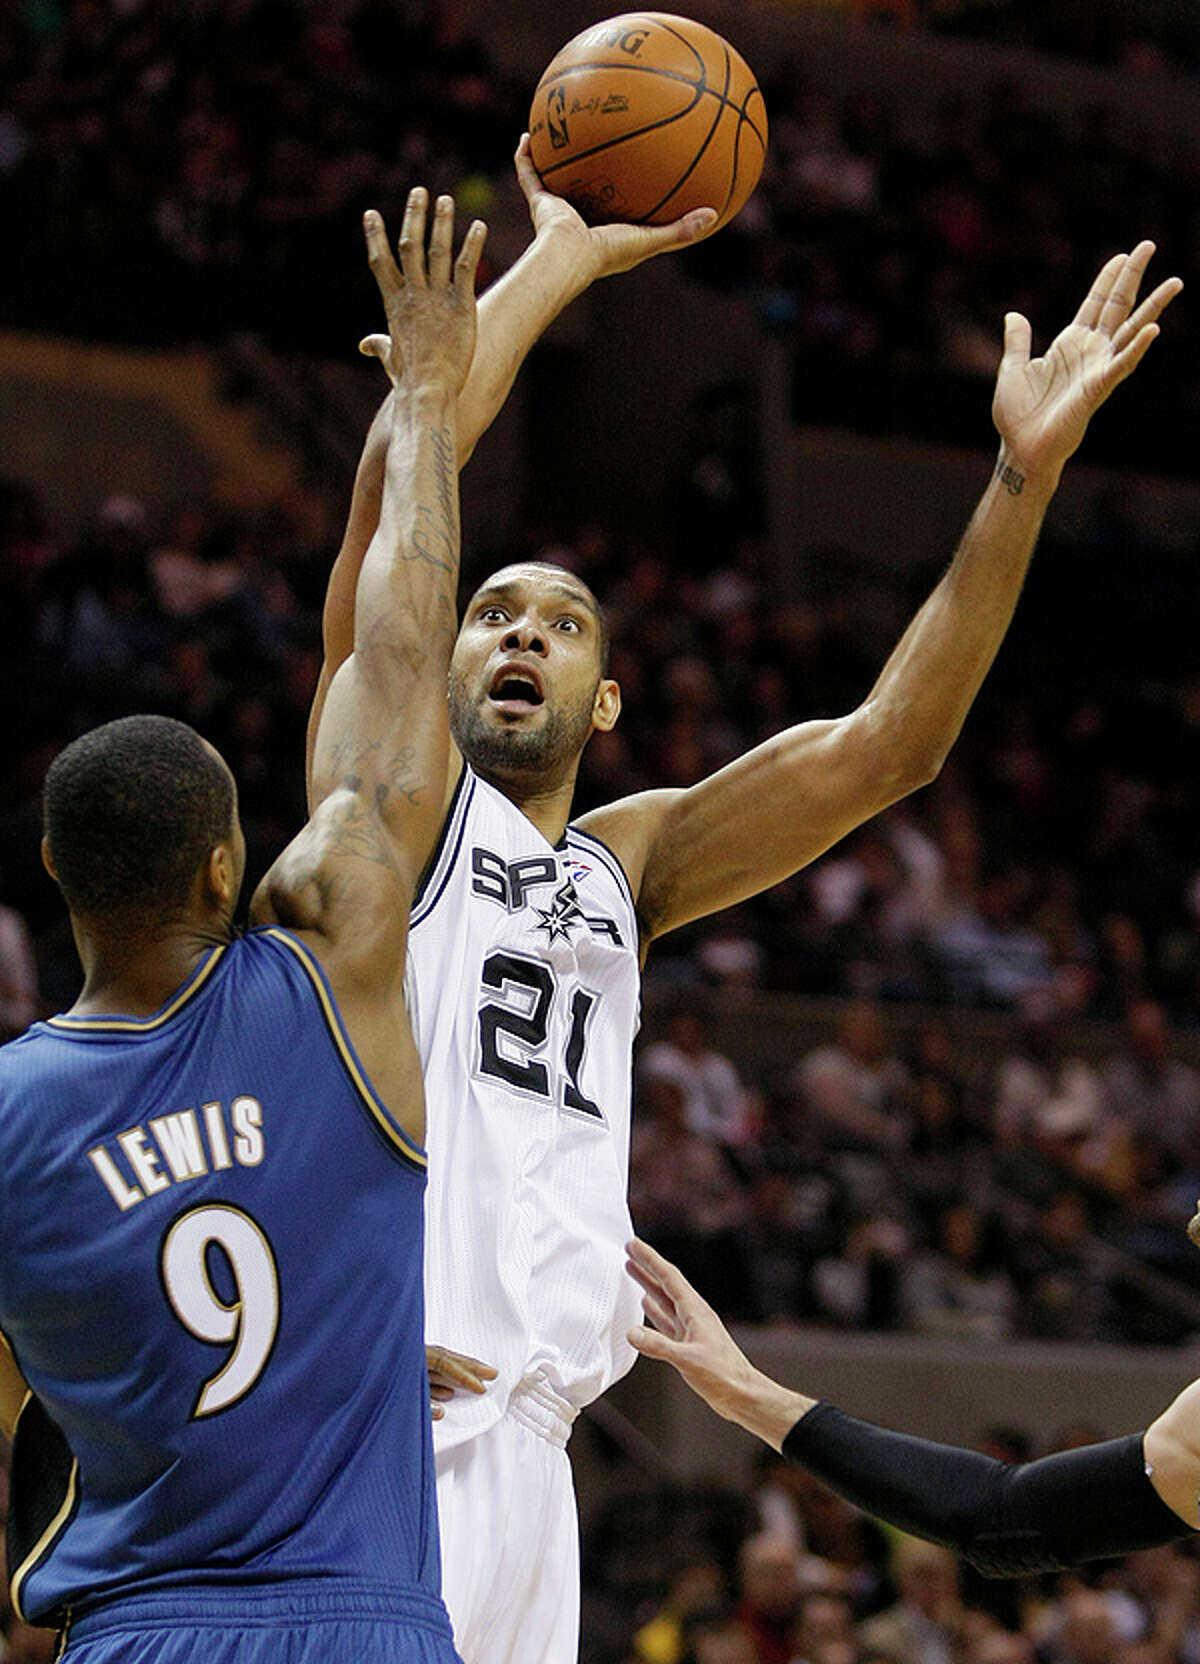 The Spurs' Tim Duncan (right) shoots over the Wizards' Rashard Lewis on Sunday at the AT&T Center.